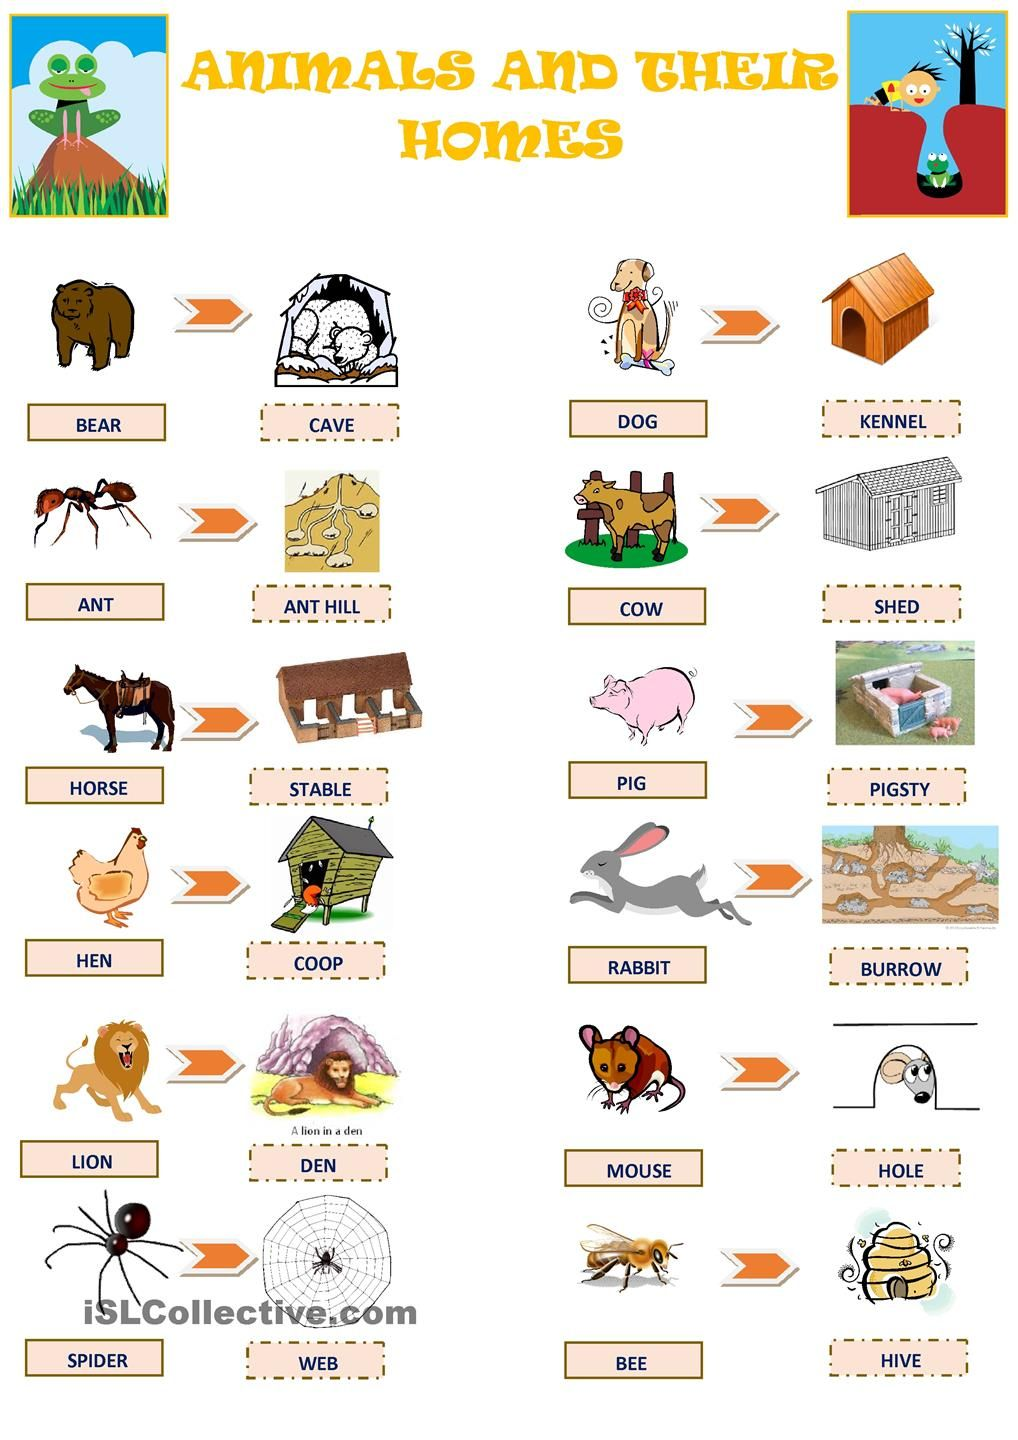 worksheet Animal Homes Worksheets 1000 images about woordcluster engels dieren on pinterest improve english clip art and insects